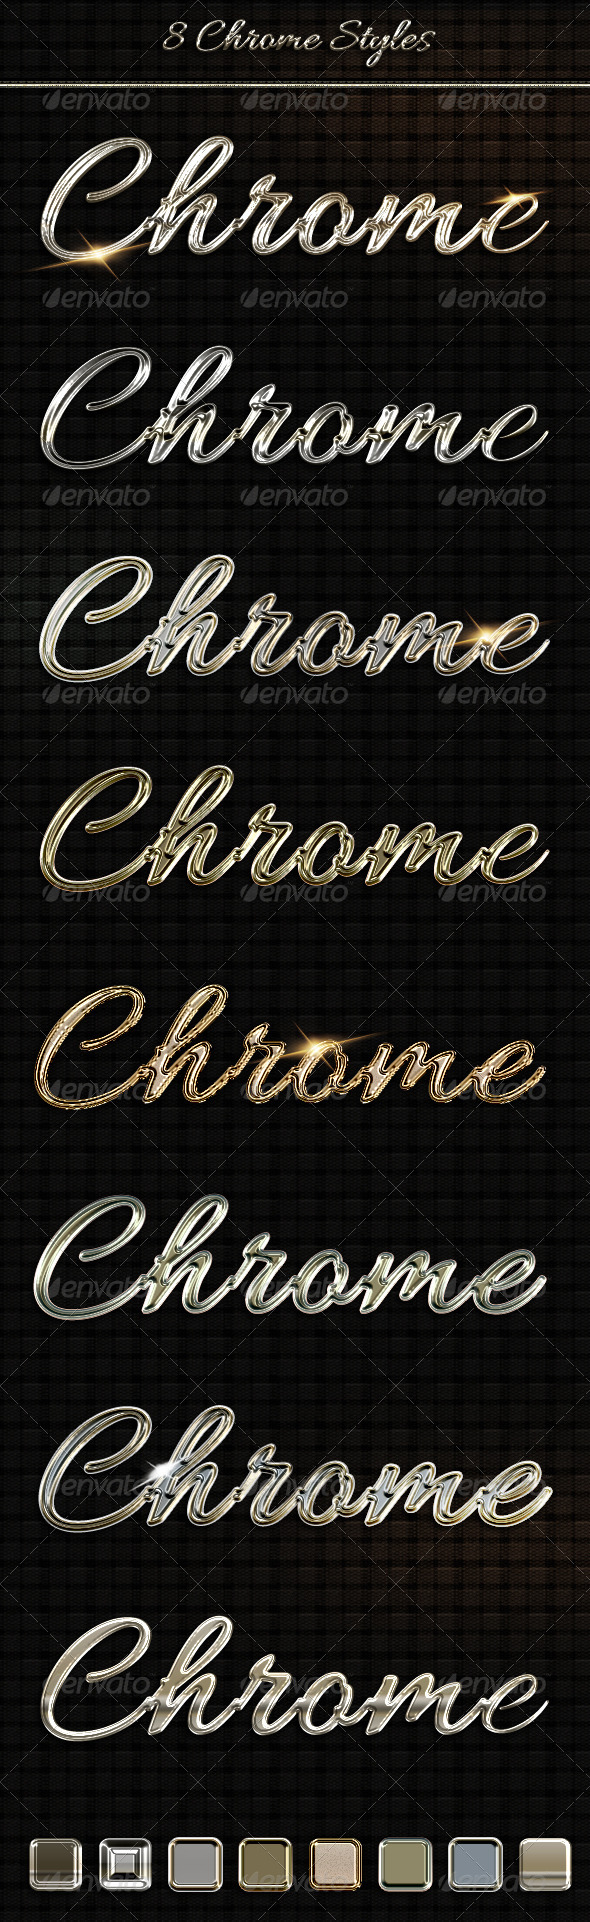 8 Luxury Chrome, Metal  Text Styles - Text Effects Styles